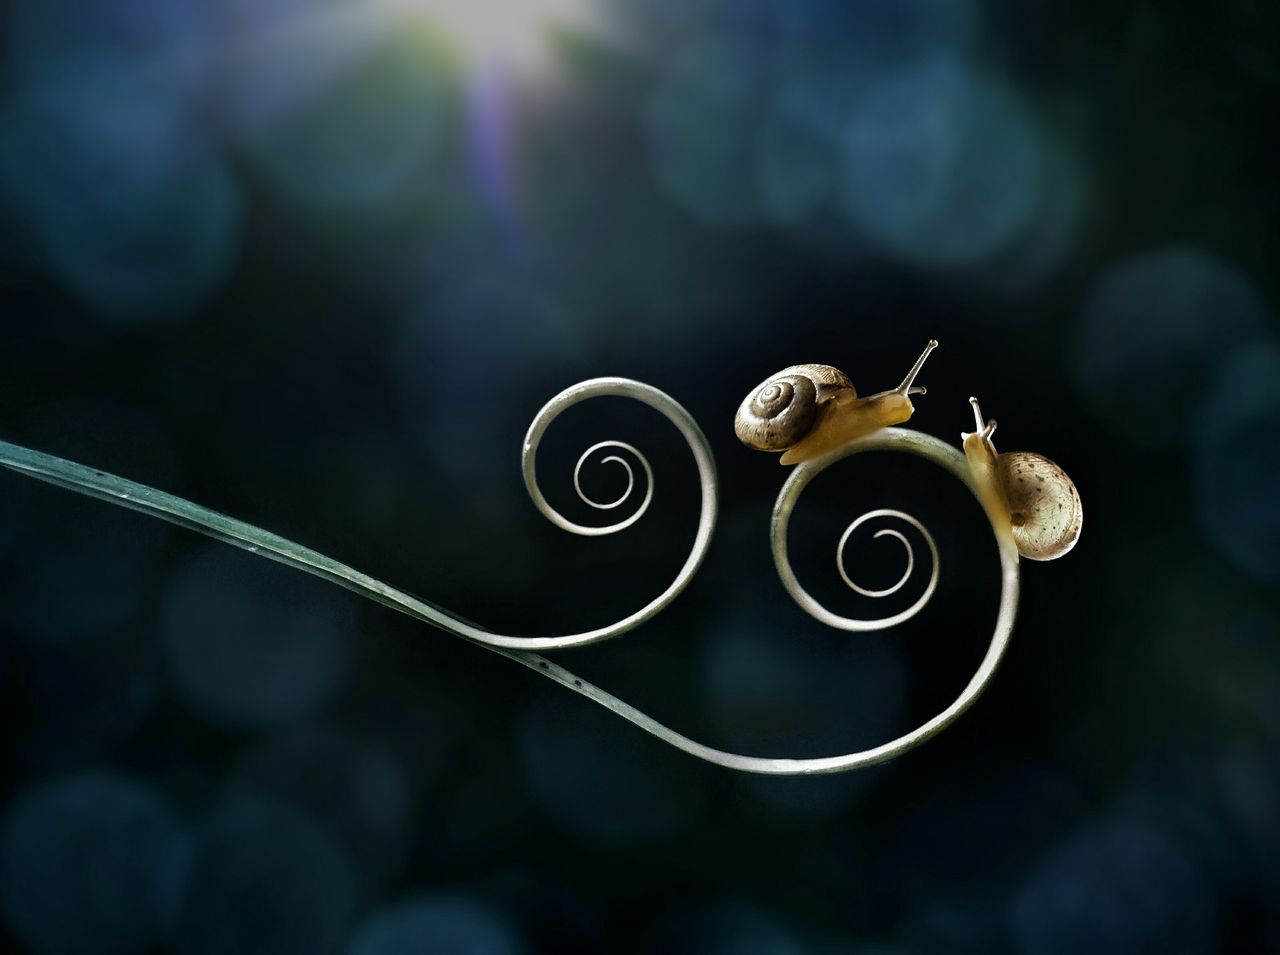 Close-up of snails on tendrils